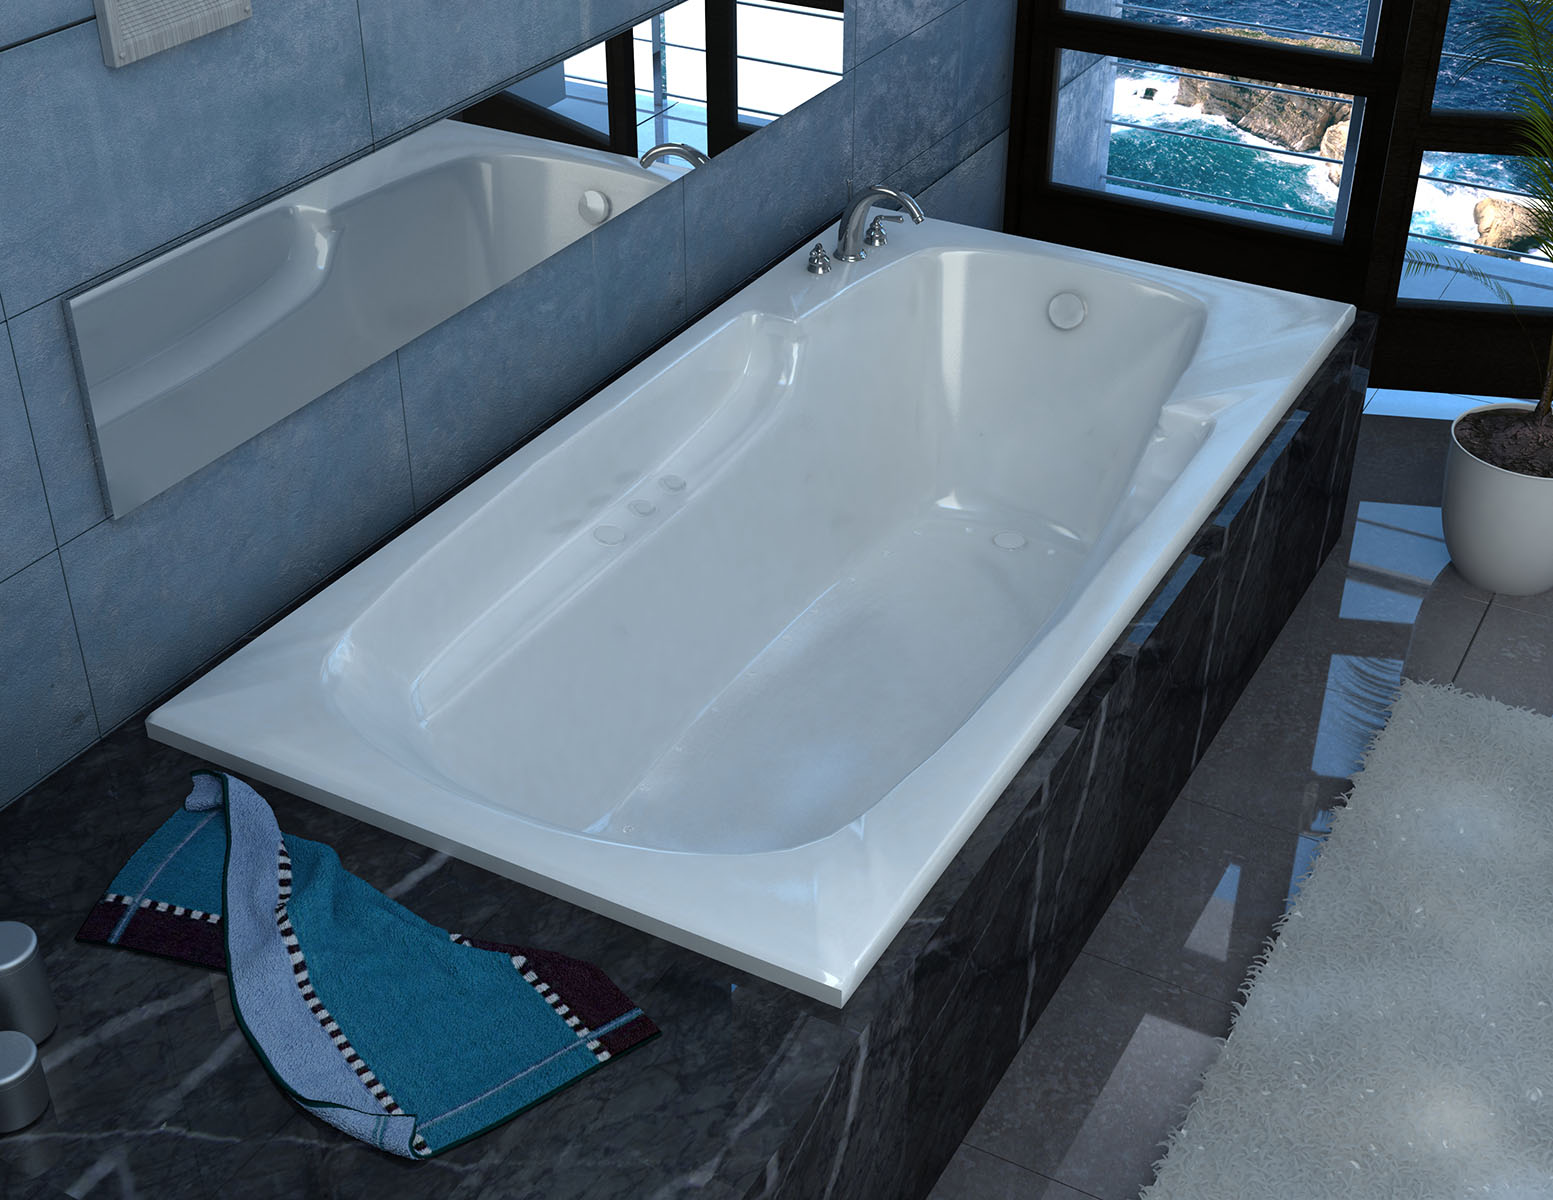 Aesis 36 x 60 Rectangular Air Jetted Bathtub